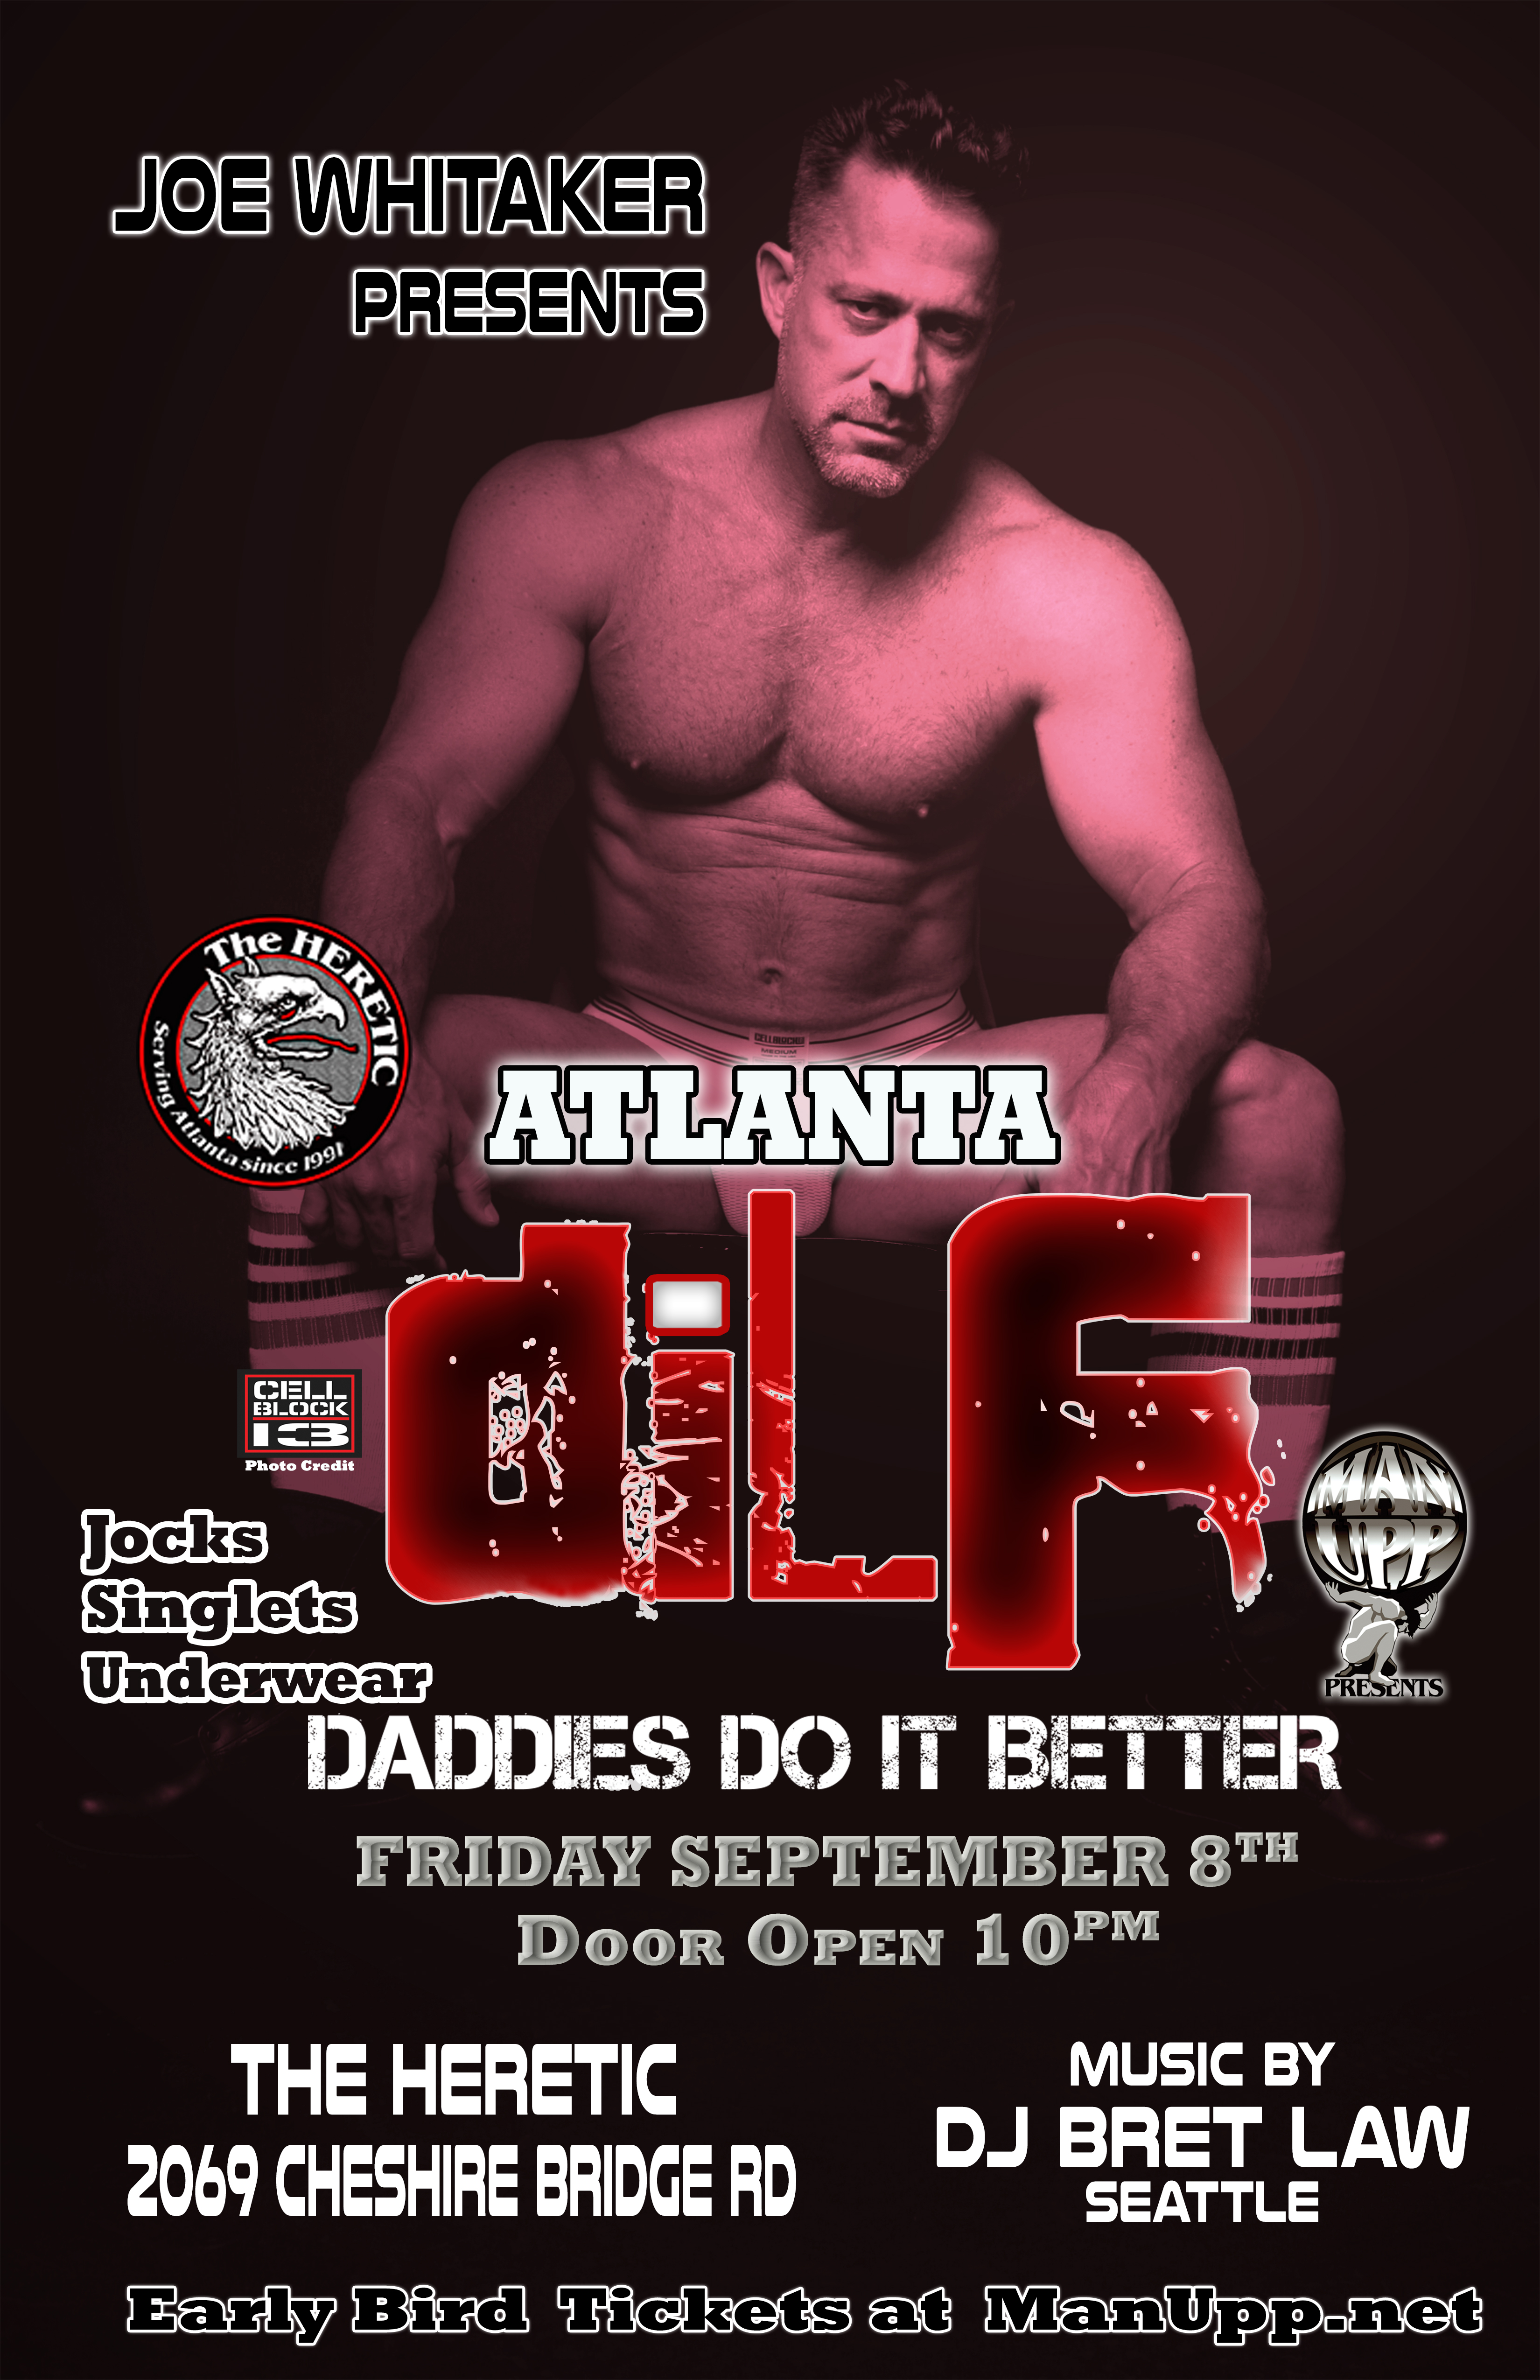 DILF Atlanta Men's Jock/Underwear Party by MAN UPP & Joe Whitaker